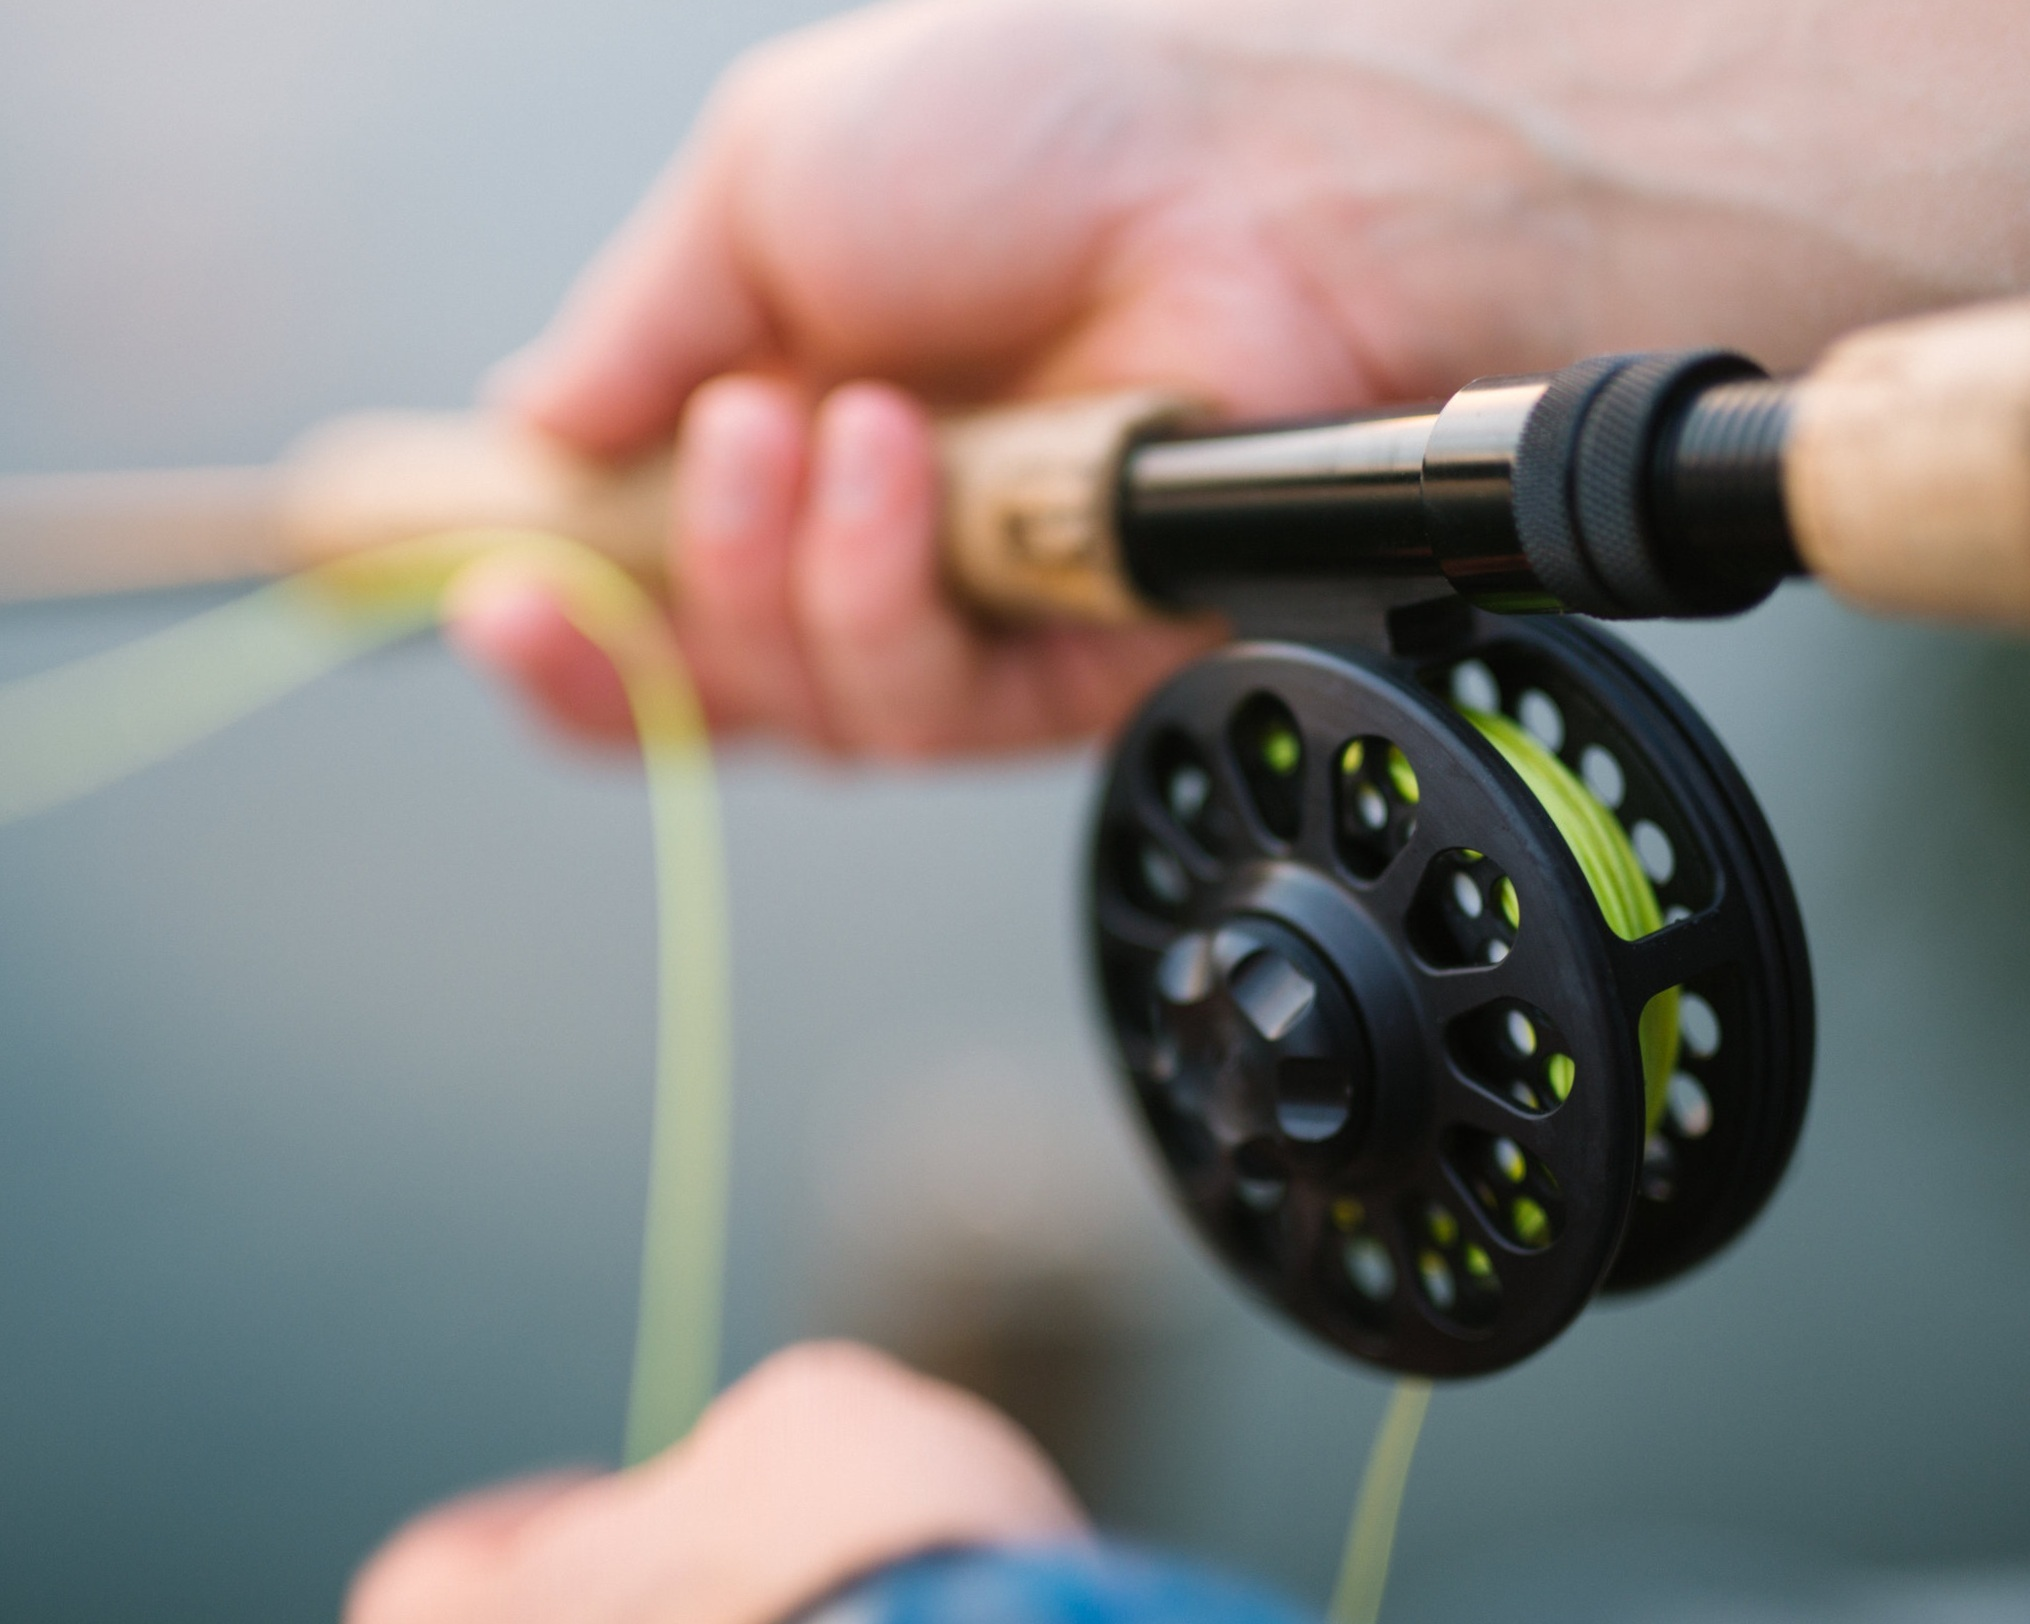 Life Spark Sport Fishing Tackle new lineof fish attracting flies - Each fly is hand tied and originated by the inventor Rick Crozier and are sold in packs.All hooks are certified ION field free with no detectable fish repelling ION field.Every fly has the magic of the Electron Fish Attractorthat projects an electron field that is much stronger than the natural electric field of a fish this size,indicating to all fish that this fish is injured and an easy meal.